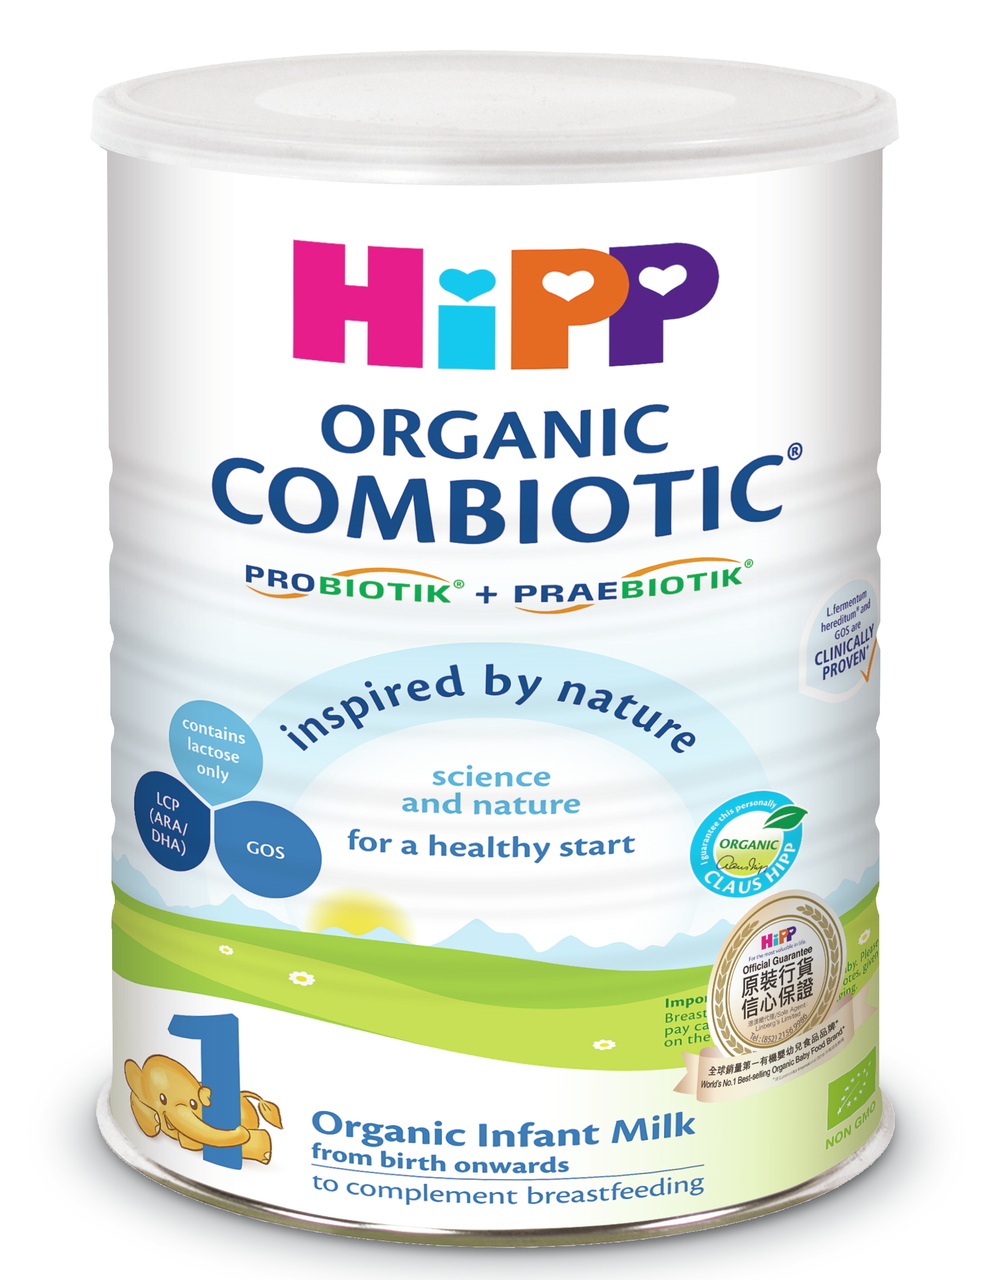 HiPP 1 Organic Combiotic Infant Milk 800g (Photo for reference only) | HiPP喜寶有機雙益嬰兒奶粉 800克  (圖片只供參考)